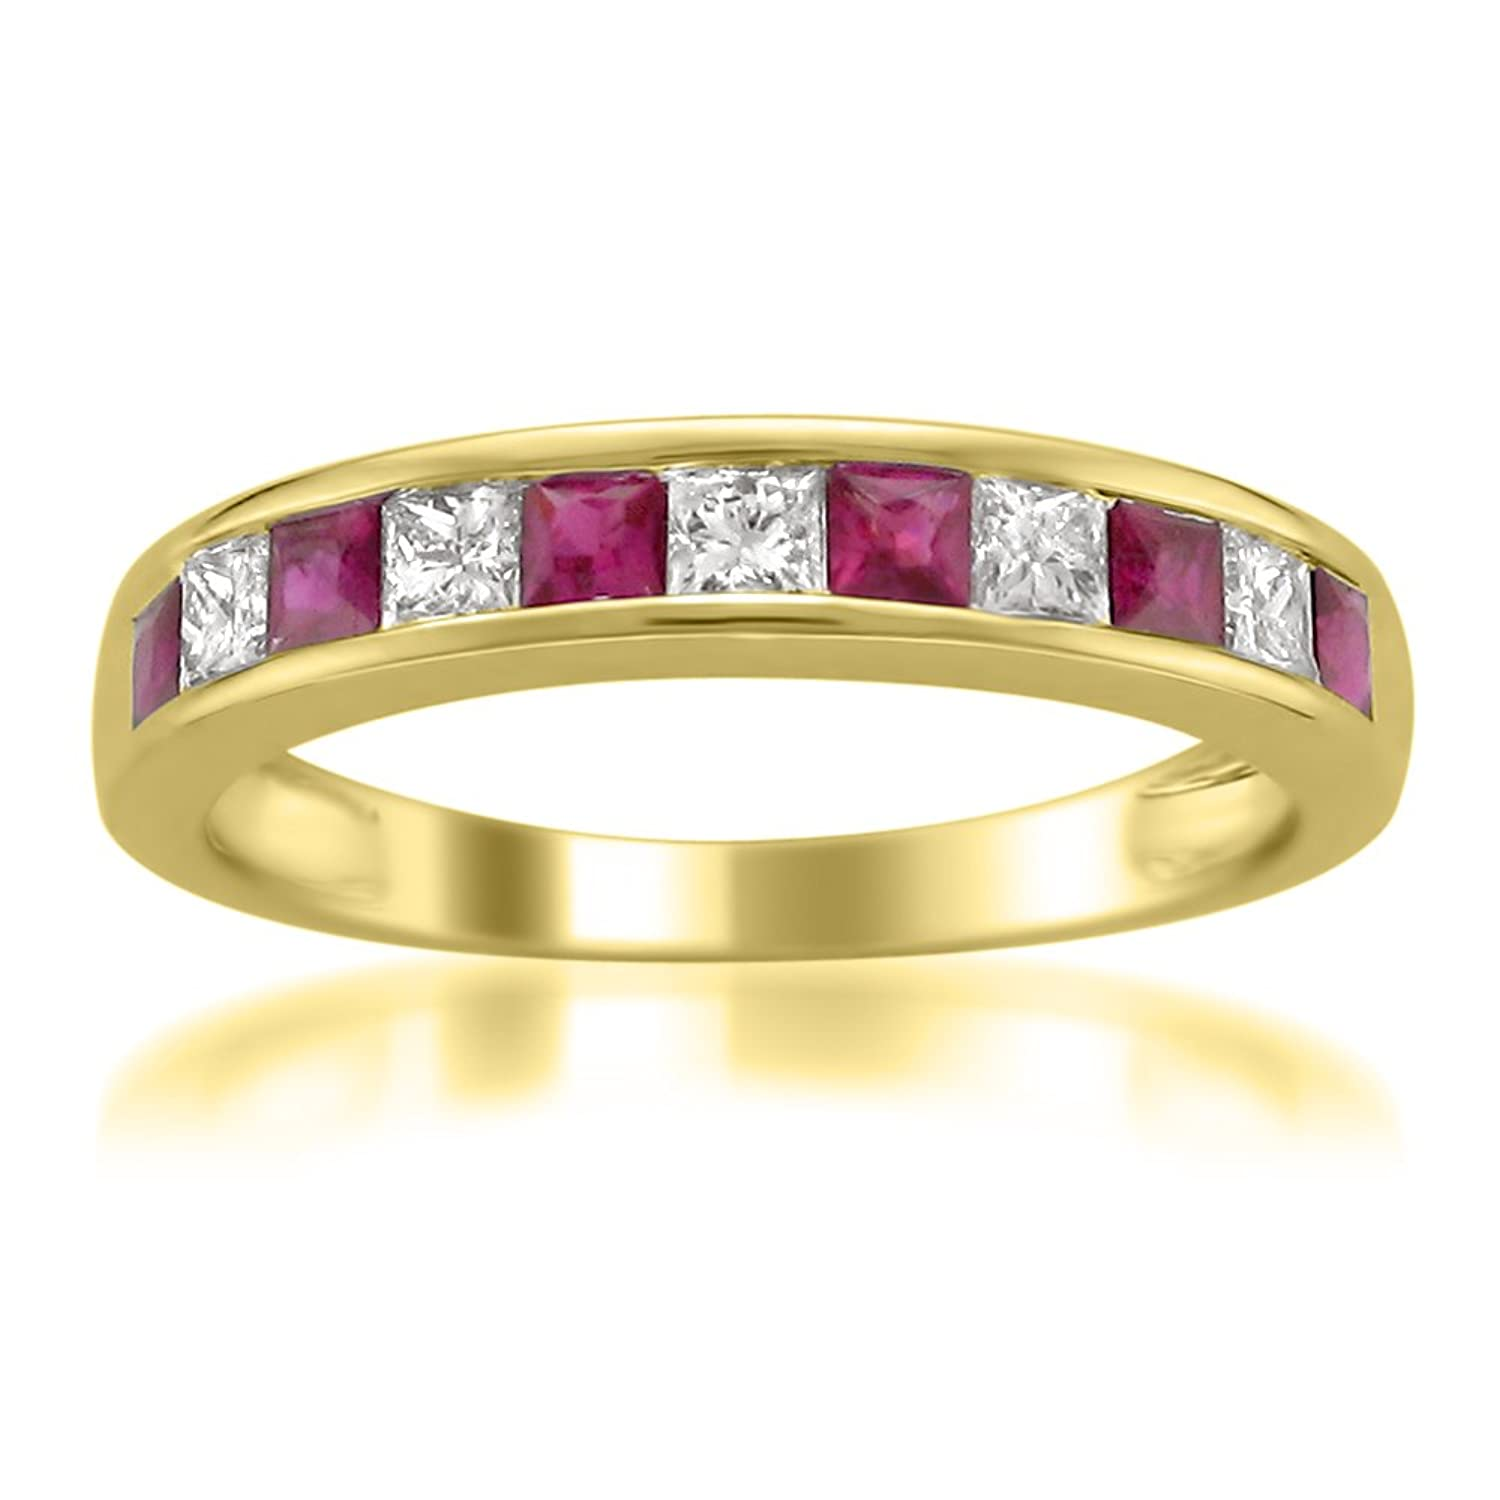 14k Yellow Gold Princess-cut Diamond and Red Ruby Wedding Band Ring (1 cttw, H-I, I1-I2)